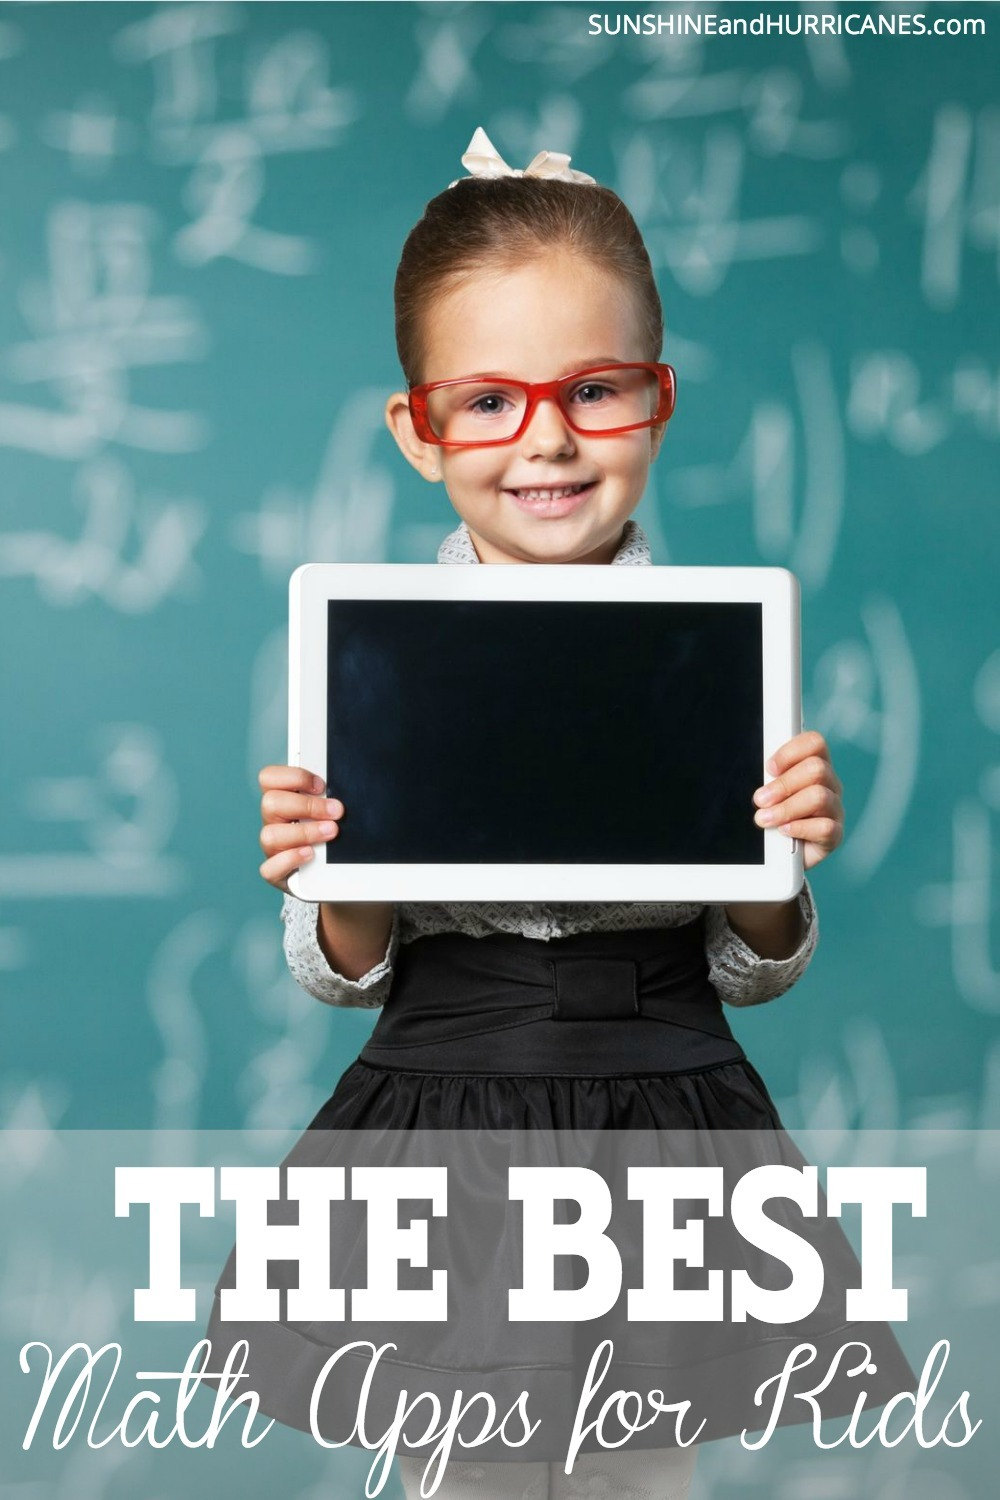 Do you have a math whiz that loves to play with numbers or a child that needs a little extra help mastering their math facts? Either way, math apps are a great way to encourage your child's learning and progress. We've found The BEST Math Apps for Kids that are sure to engage them in ways that make getting an education fun! The Best Math Apps for Kids. SunshineandHurricanes.com